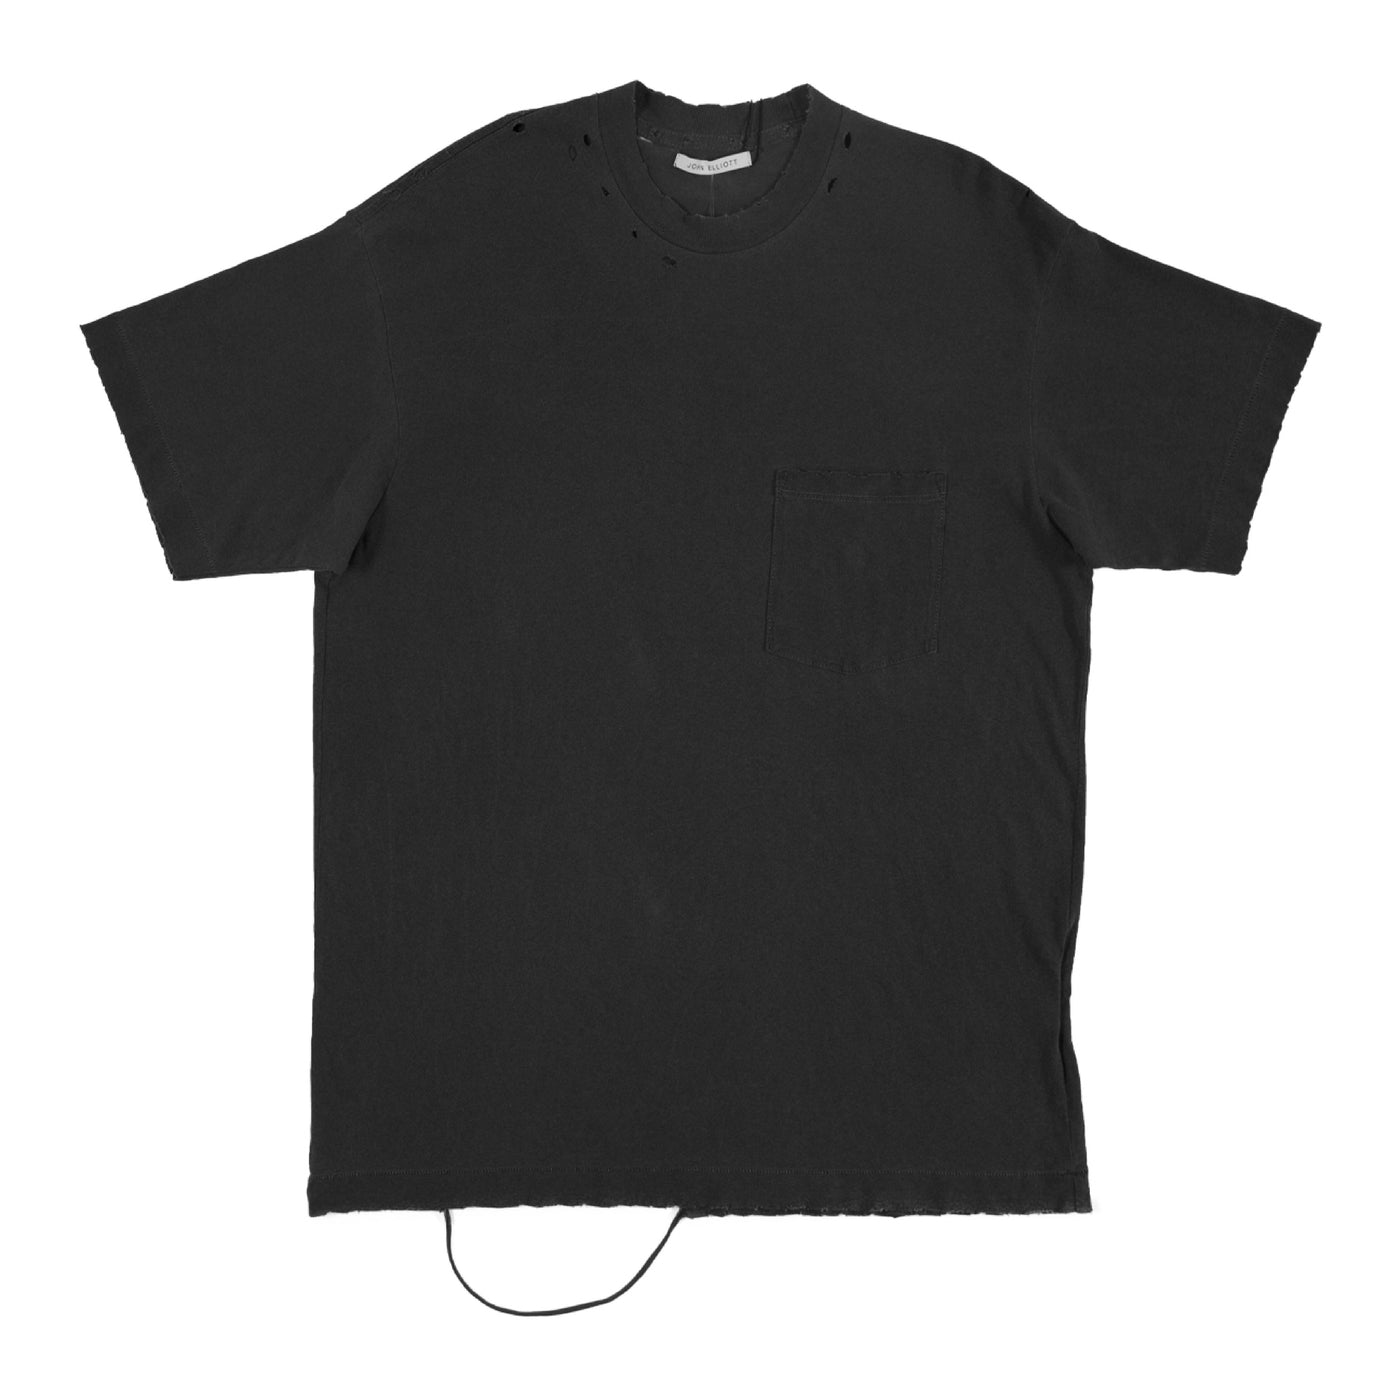 Load image into Gallery viewer, JOHN ELLIOTT DISTRESSED T-SHIRT BLACK